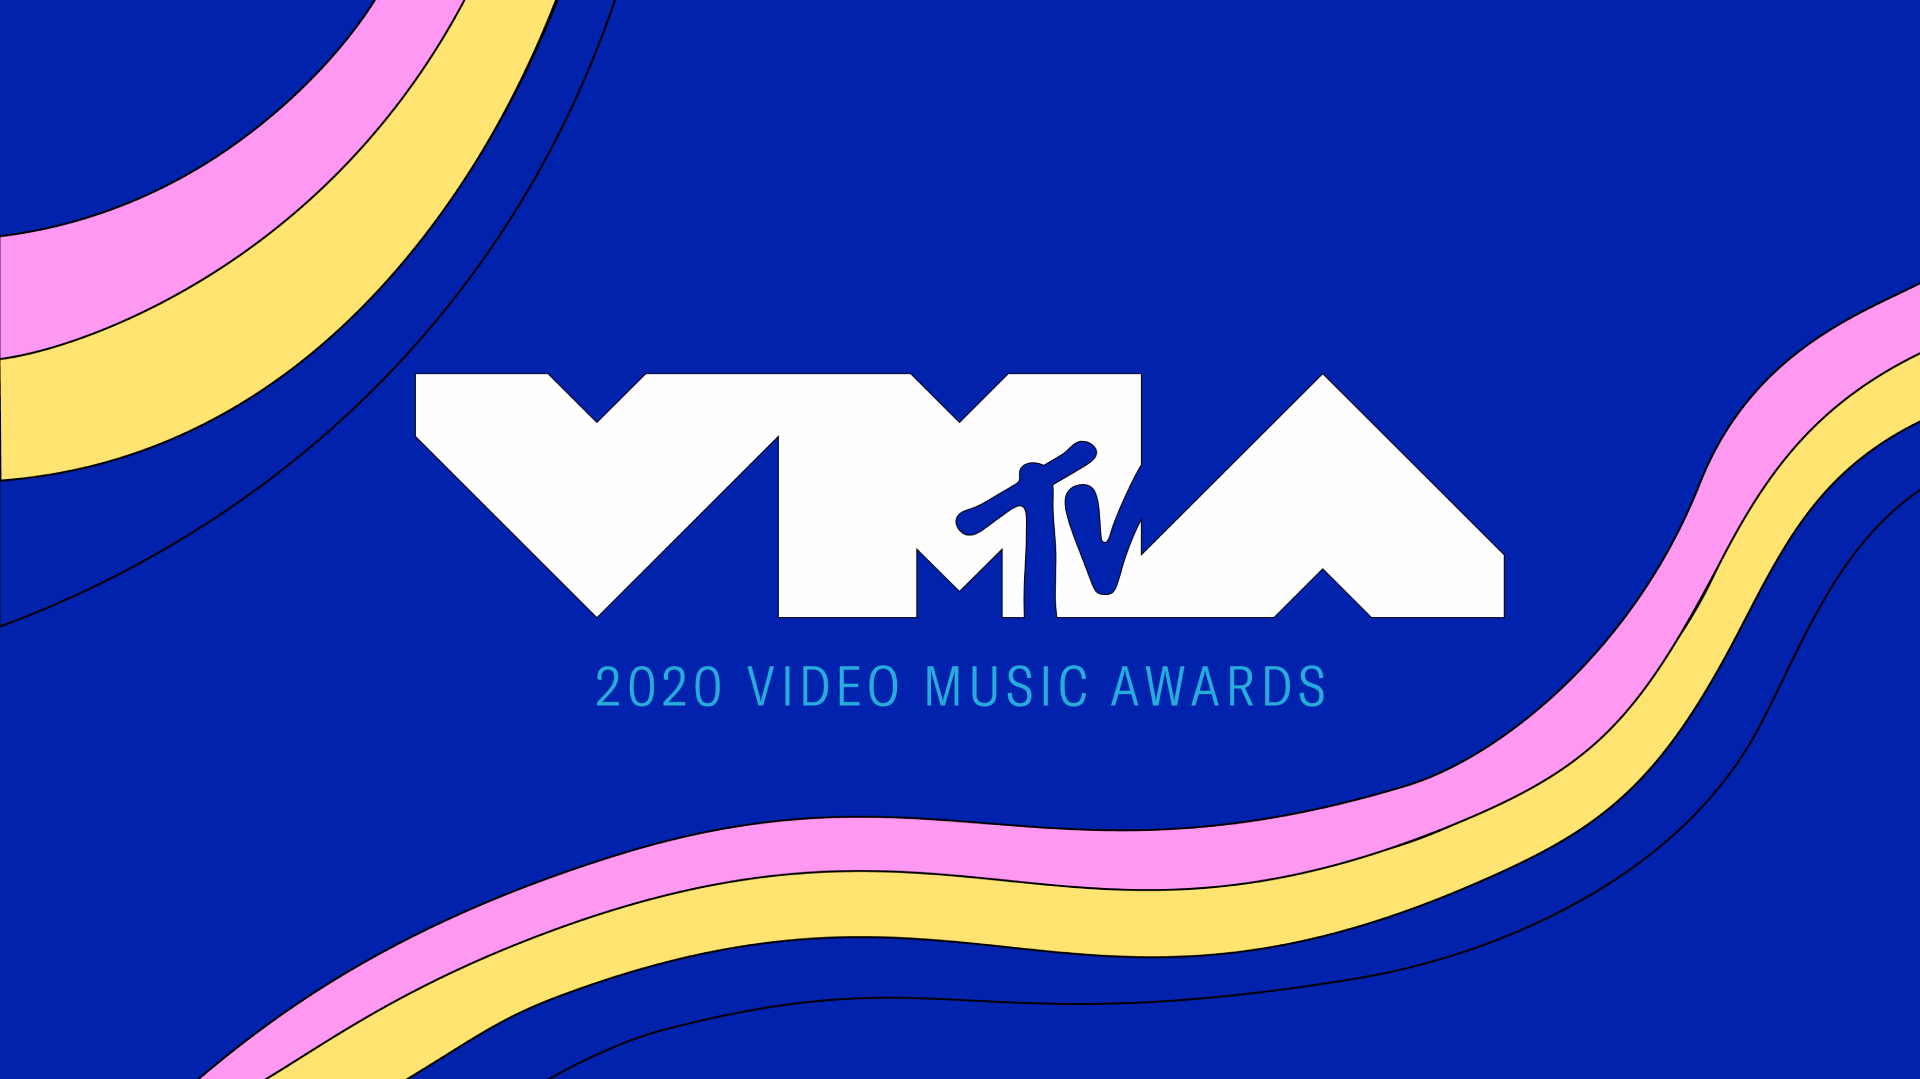 BTS nominated in multiple categories for the 2020 MTV Video Music Awards